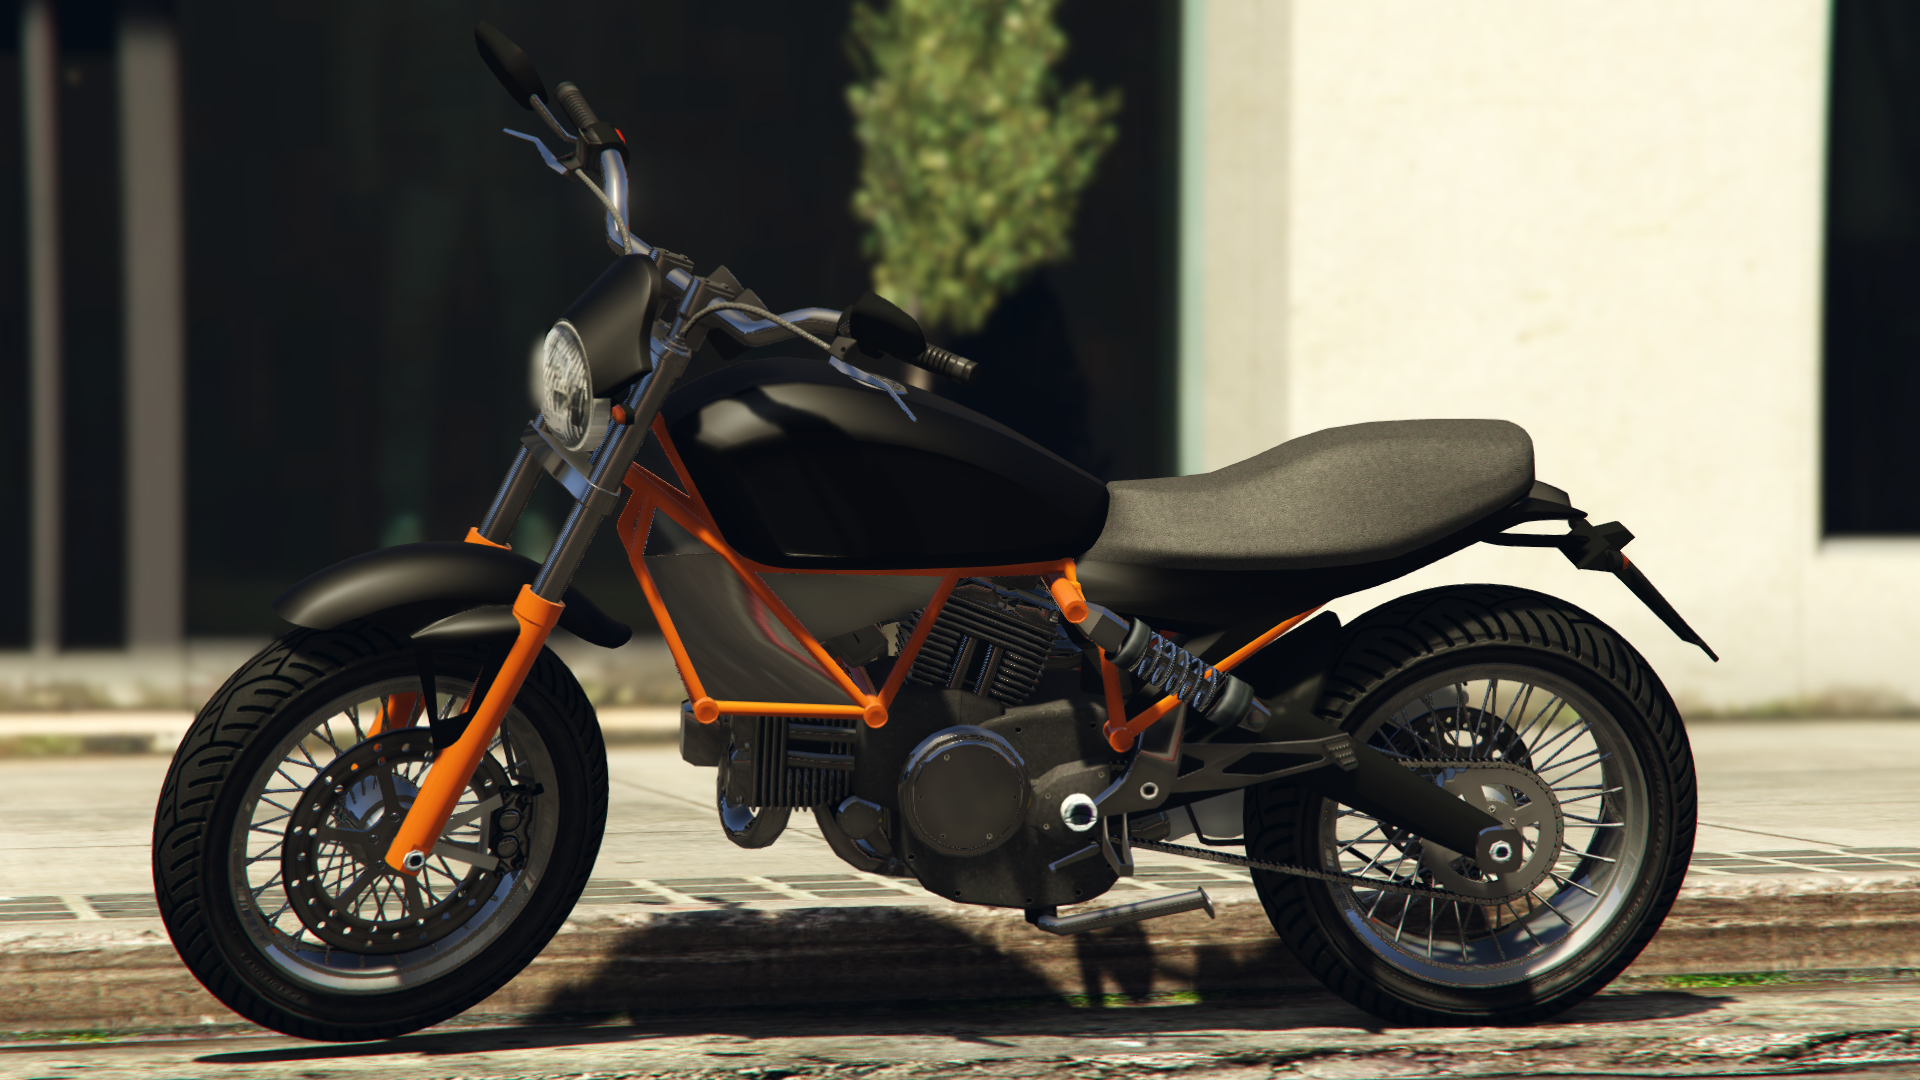 Gta Online Gets Pegassi Esskey